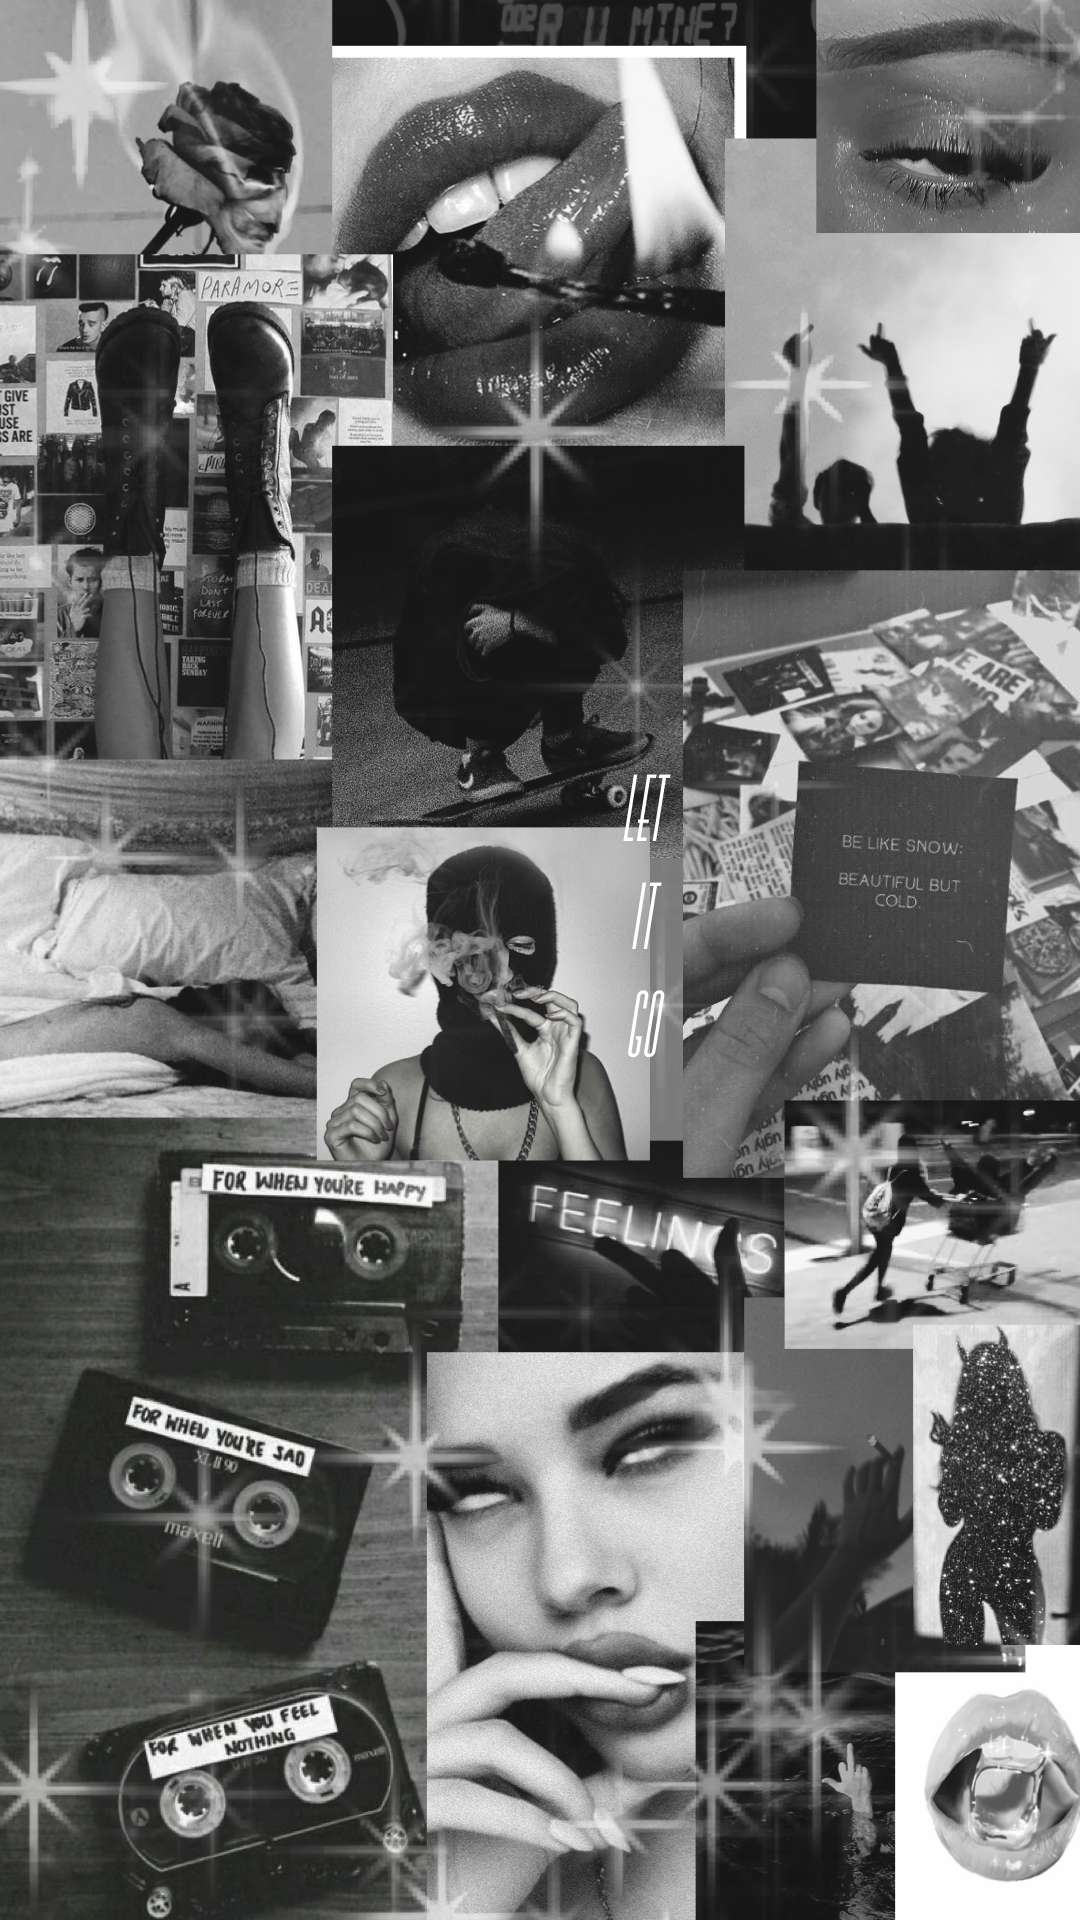 Pin by Moixx Hmar on my wallpapers | Black aesthetic ...